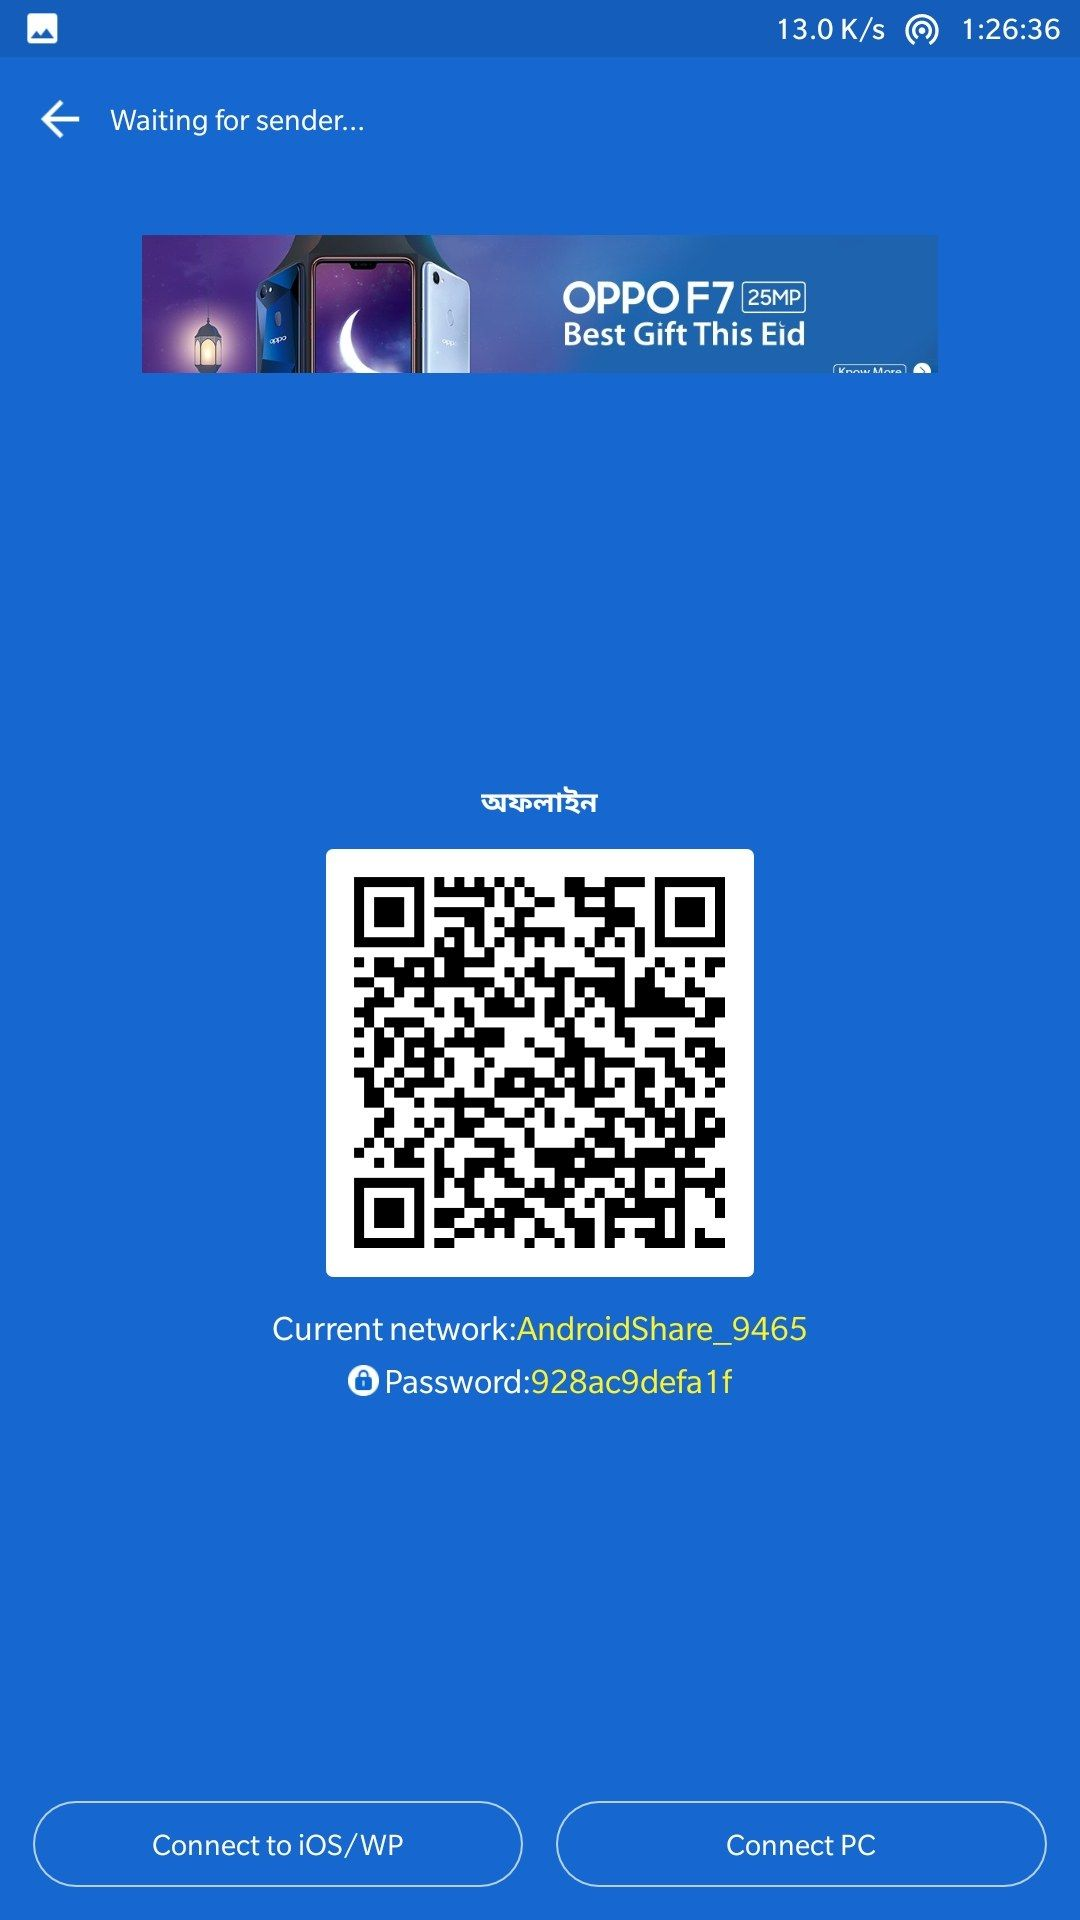 SHAREit asks for password or QR scan everytime  - OnePlus Community